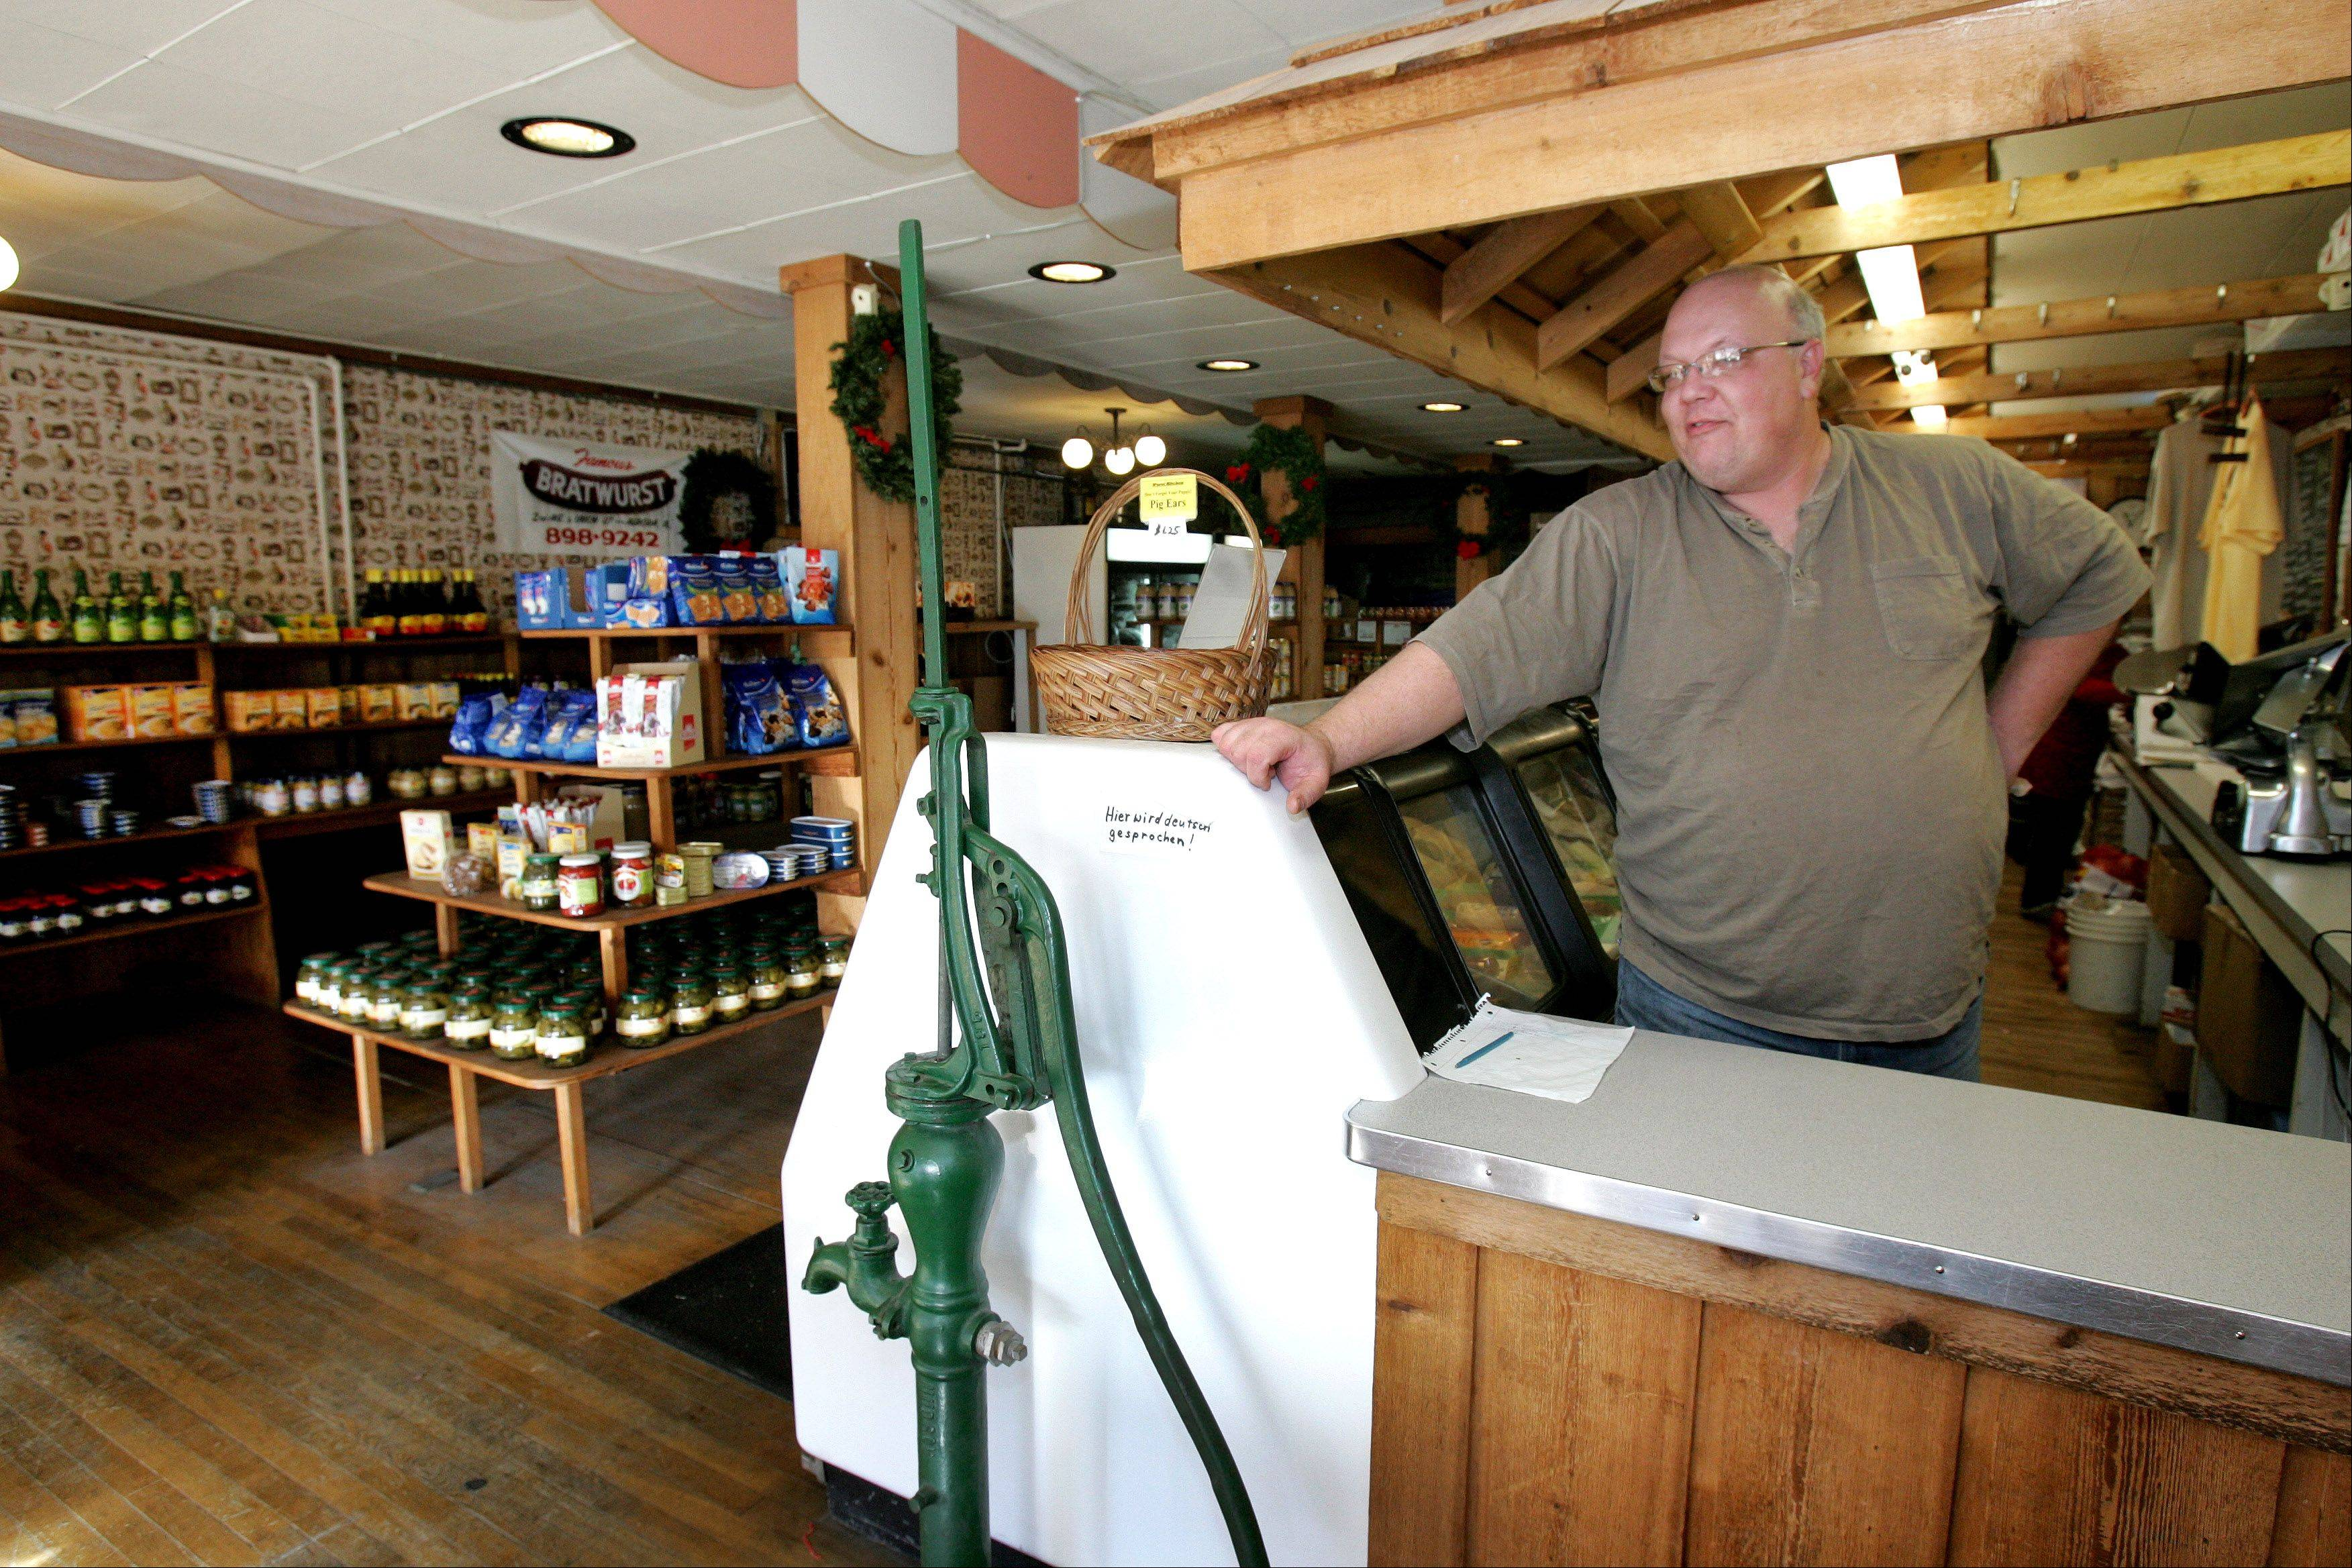 Aurora native Ed Schleining bought Wurst Kitchen 18 years ago and has changed little in the shop, which originally opened as Arnold Meat Market in 1895.